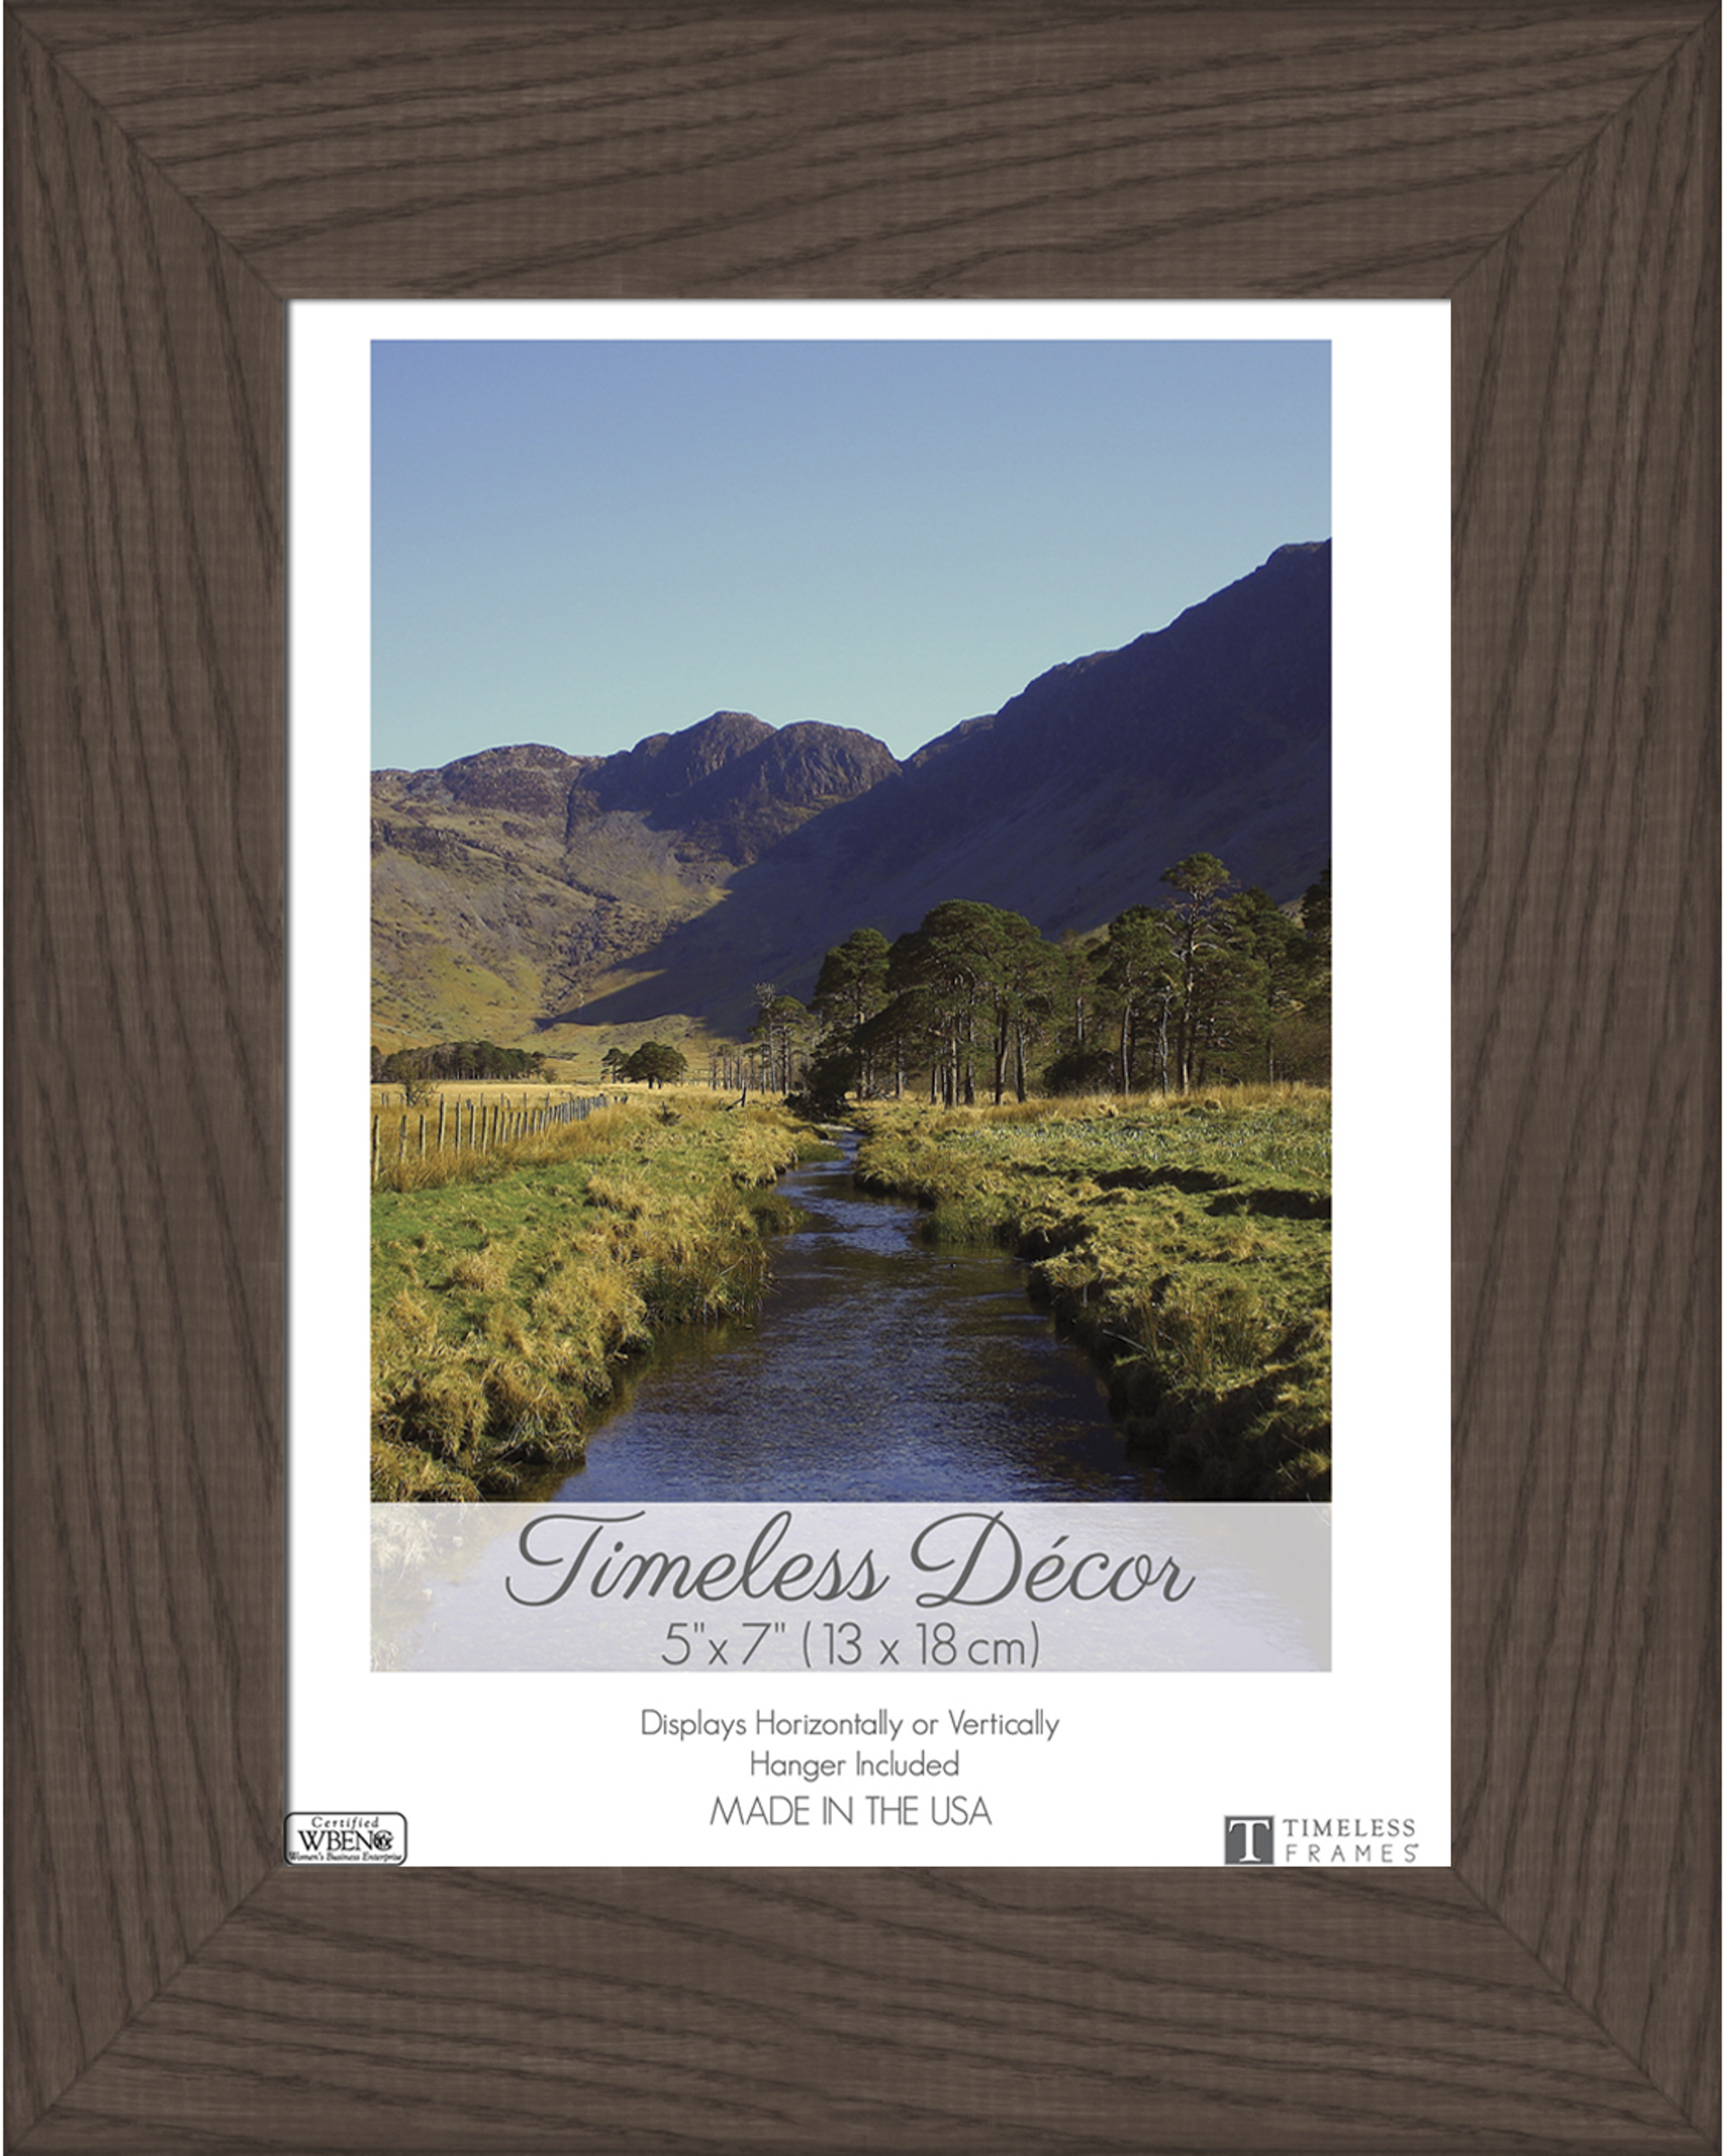 Darice Timeless Decor Shea 5 X 7 Wood Picture Frame Espresso